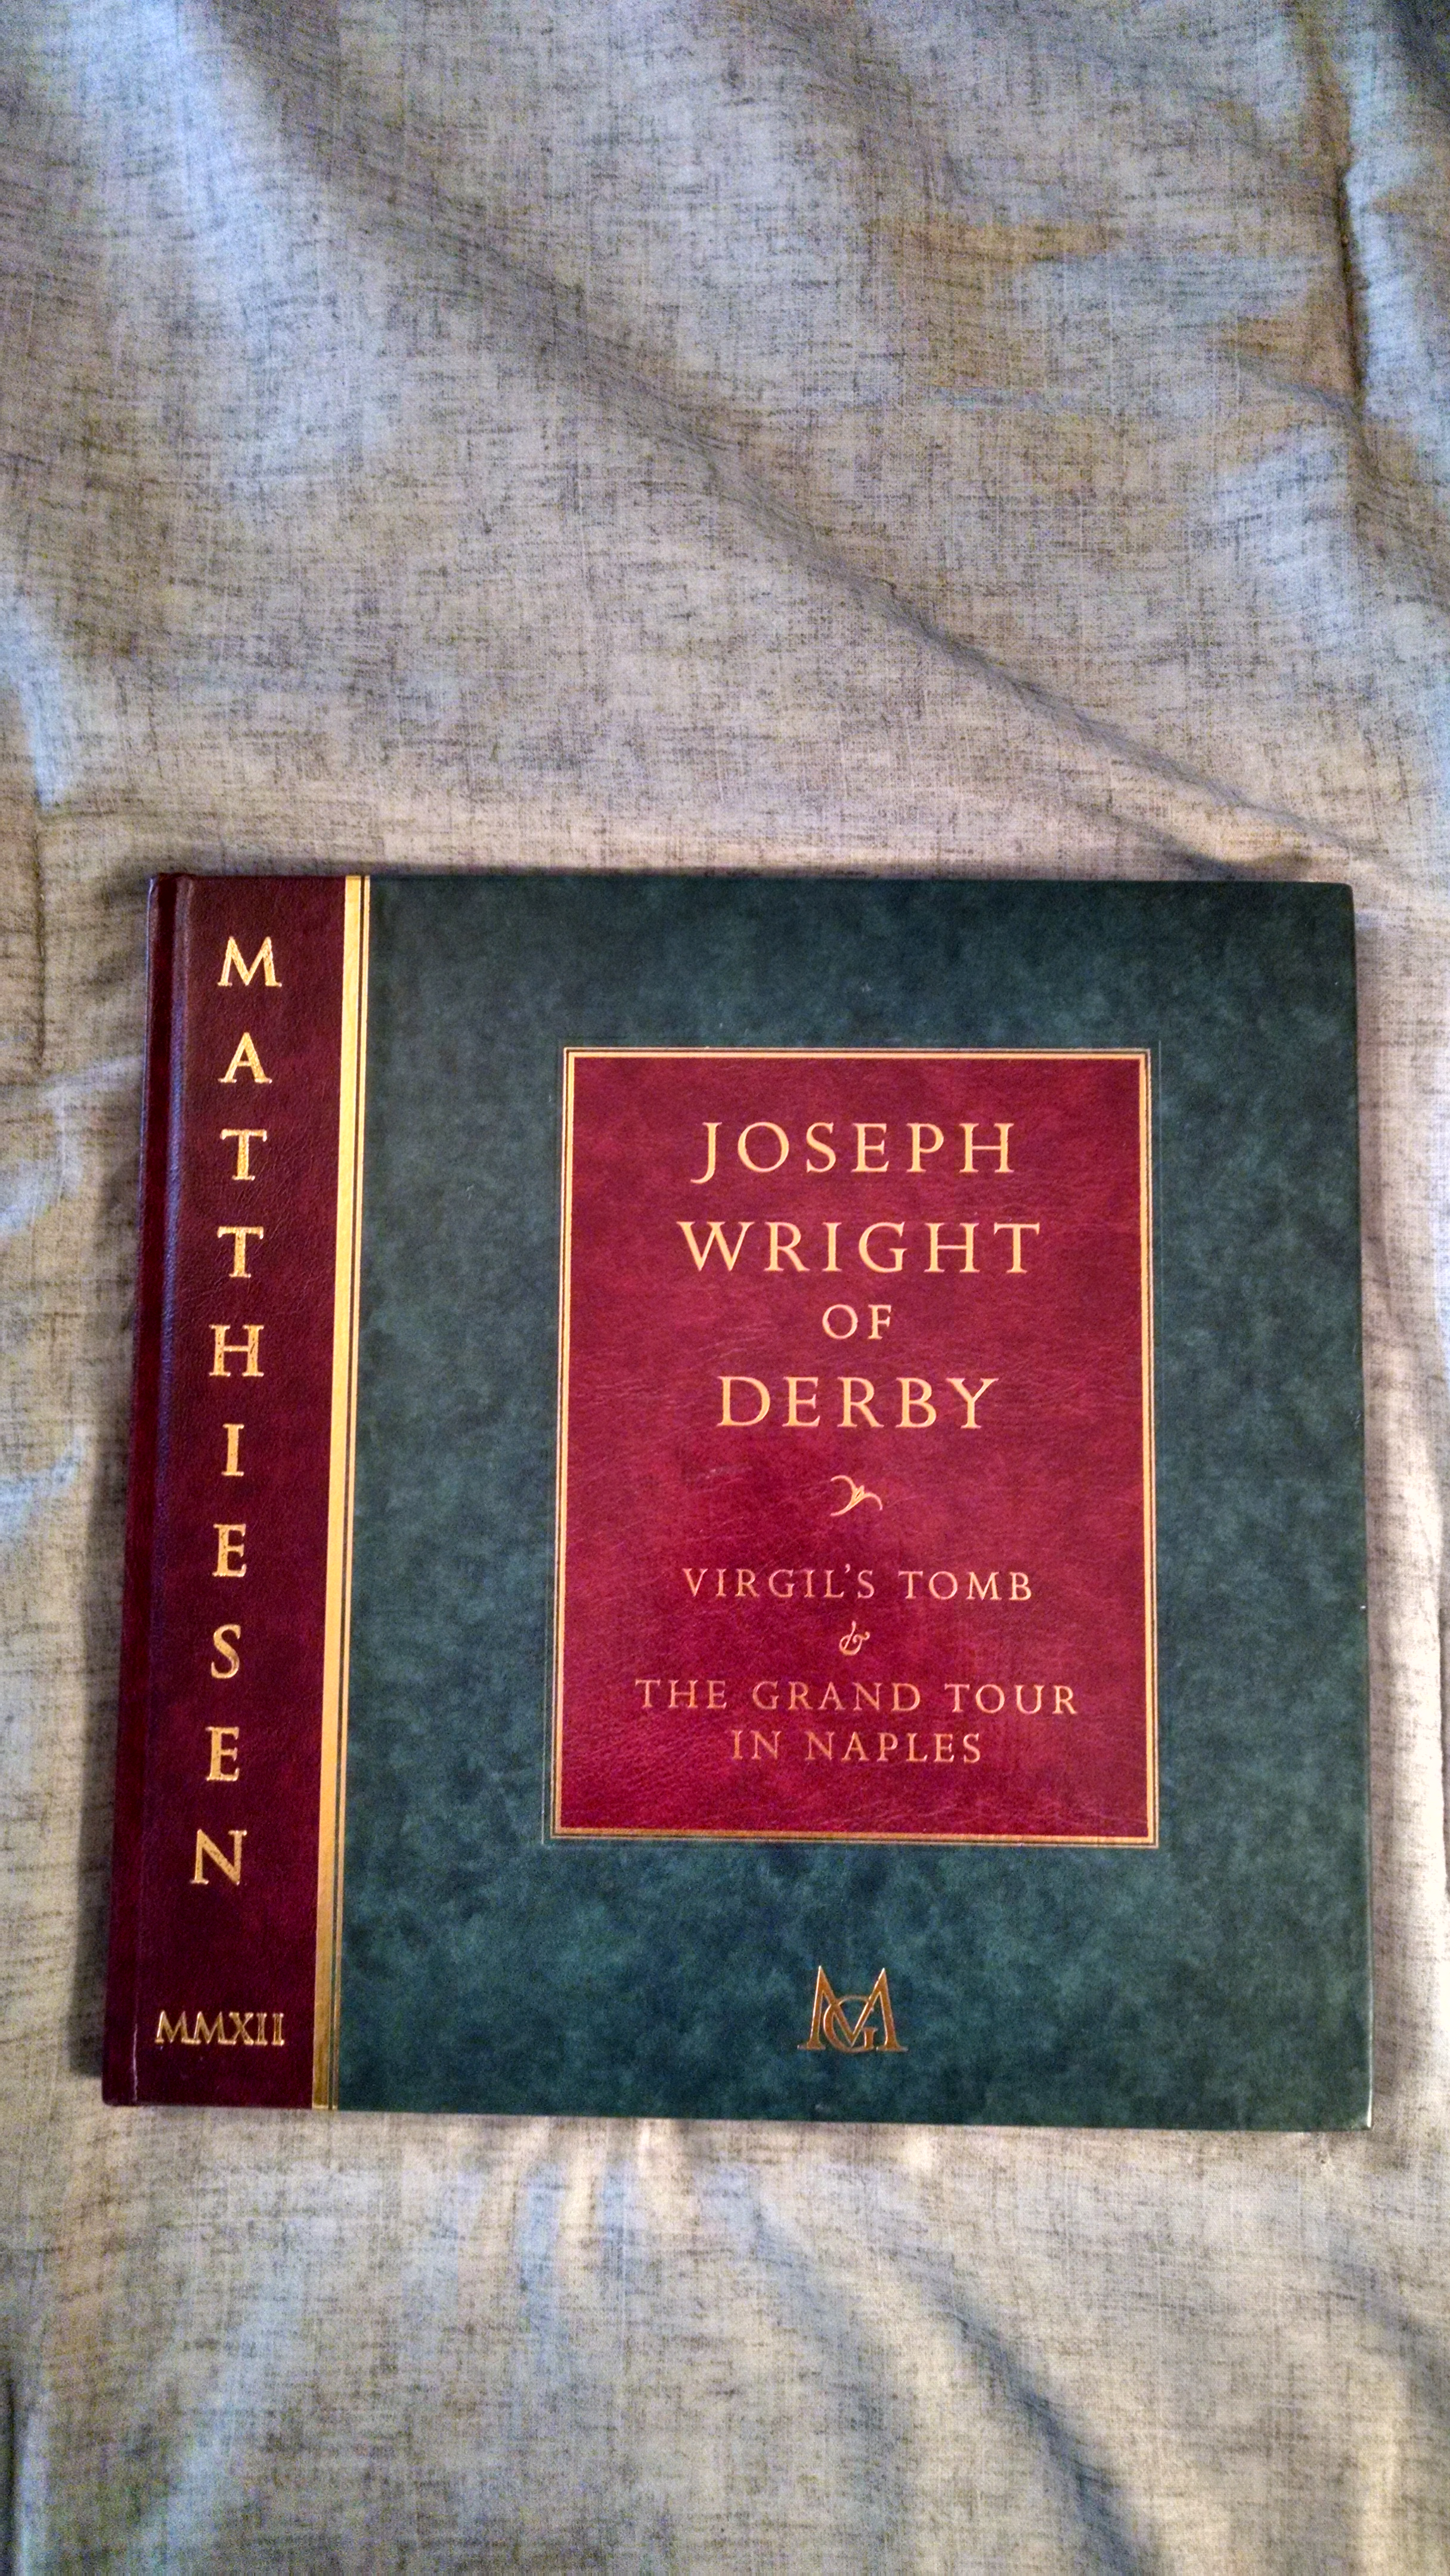 Image for JOSEPH WRIGHT OF DERBY